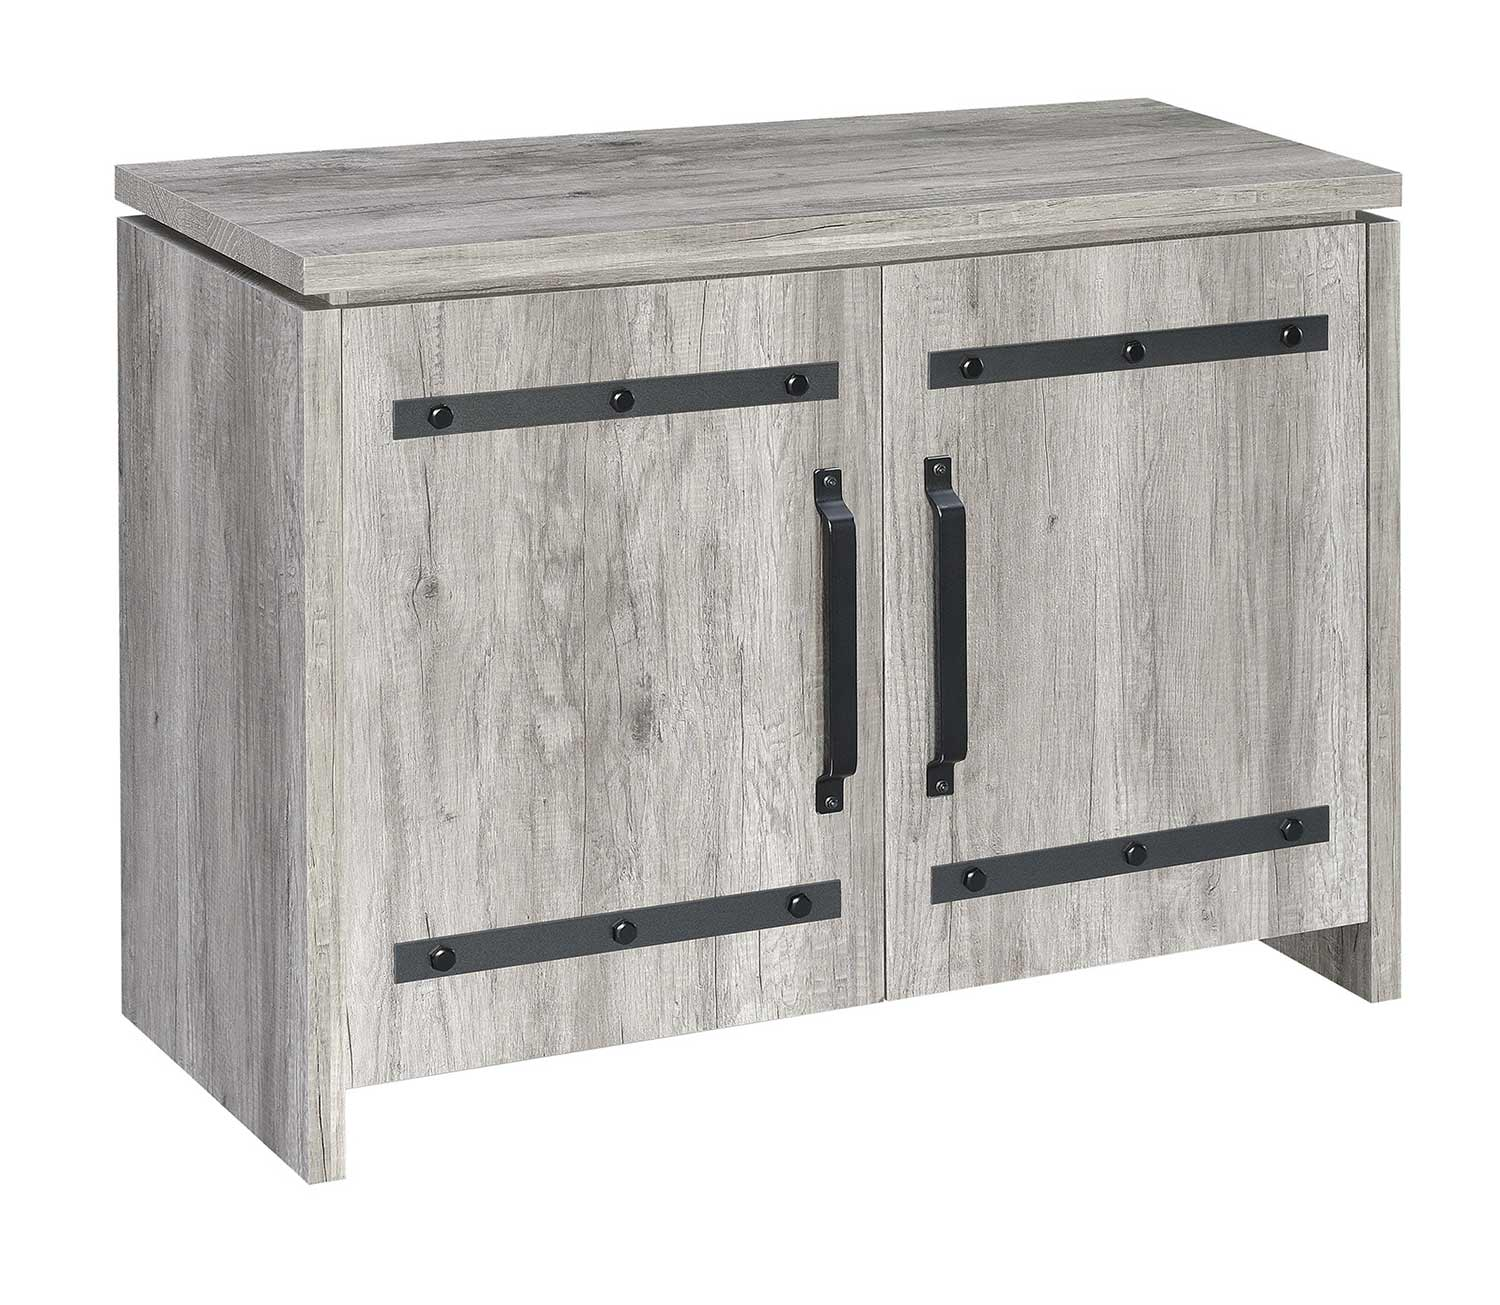 Coaster 950785 Accent Cabinet - Rustic Grey